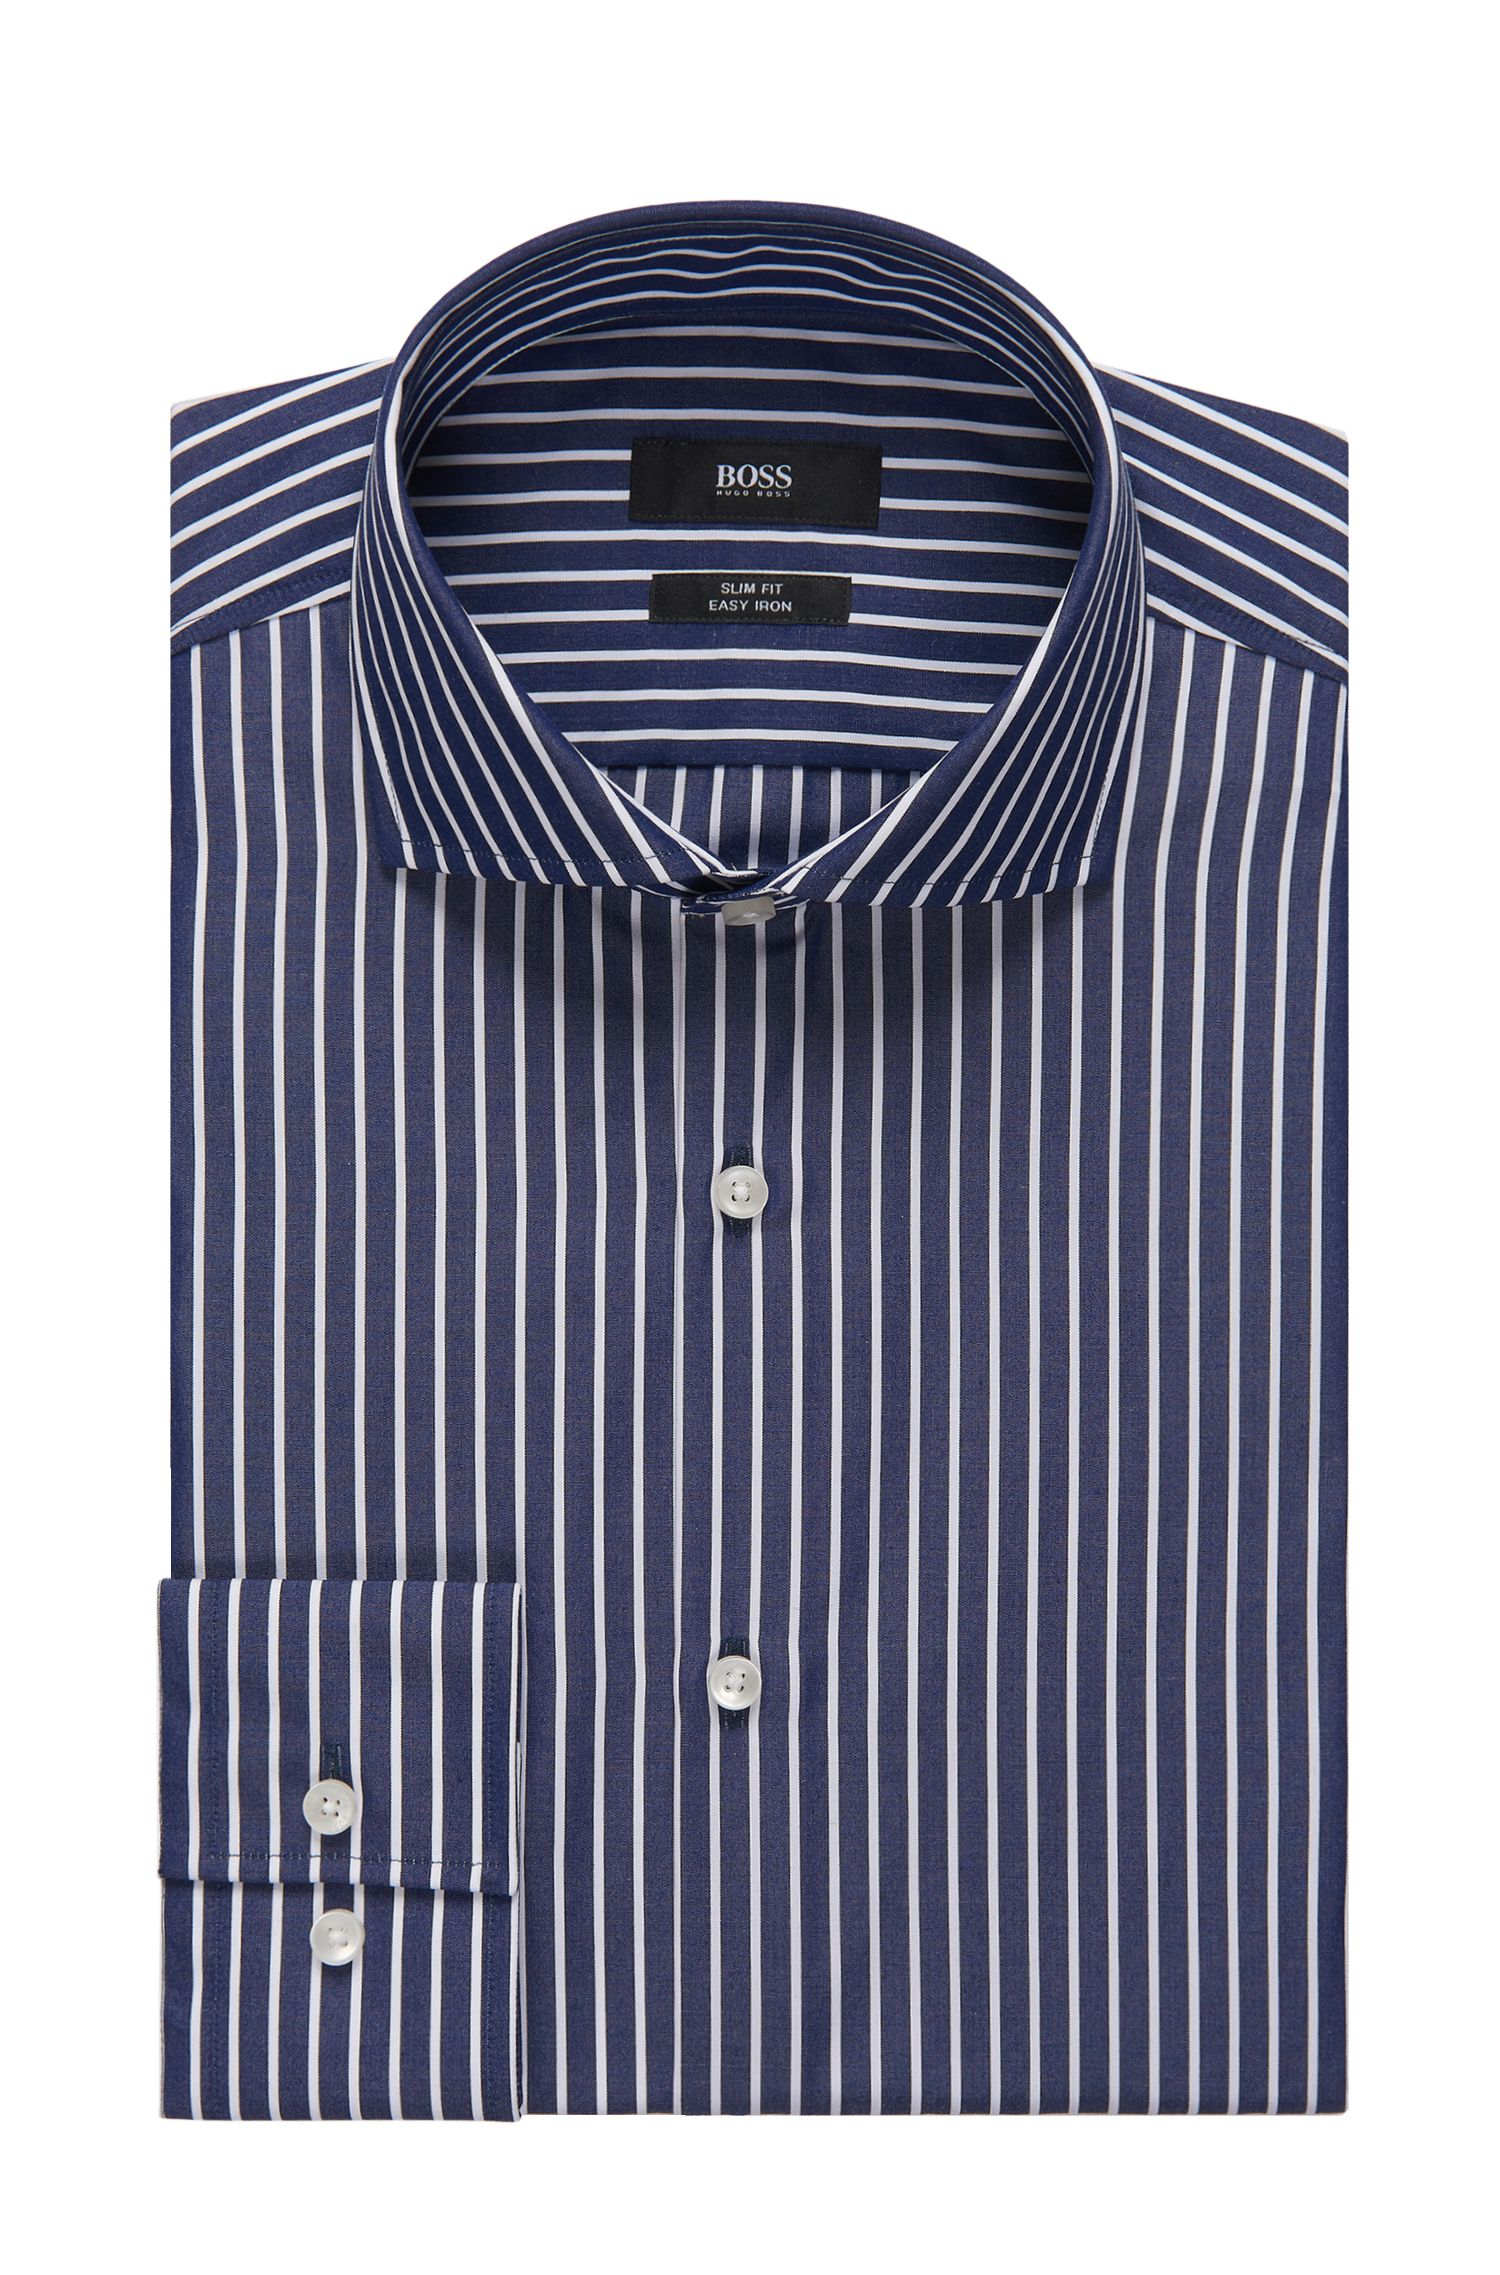 Striped Easy-Iron Cotton Dress Shirt, Slim Fit| Jason